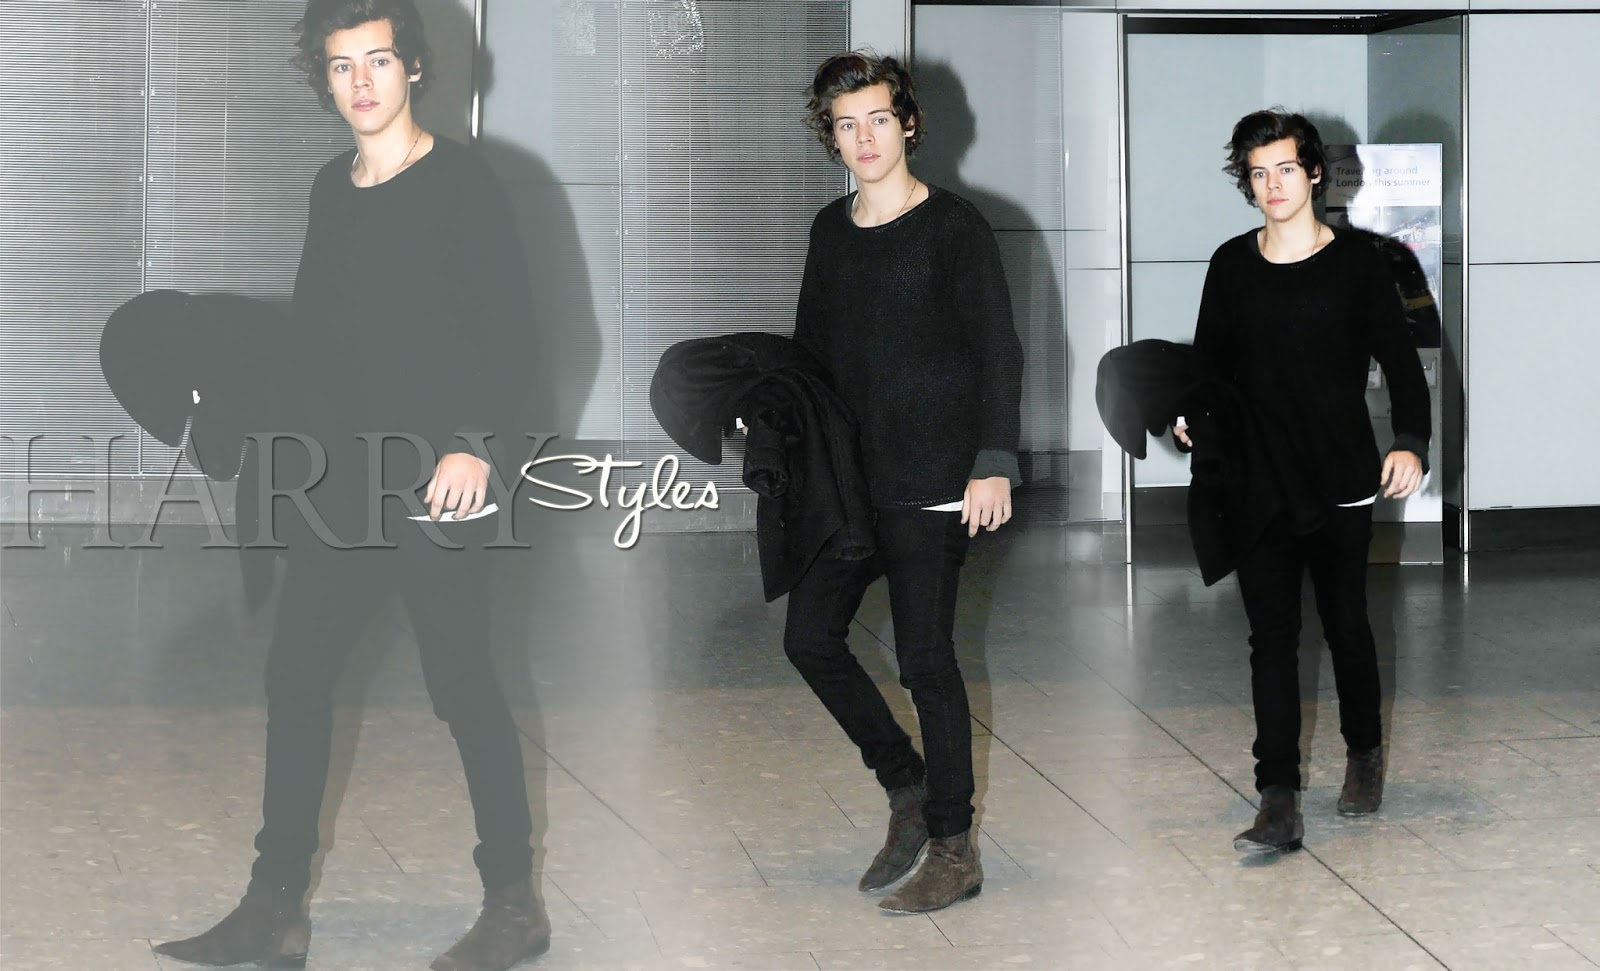 Harry Styles Wallpapers Harry Styles HQ 2013 Candids Wallpapers 1600x971